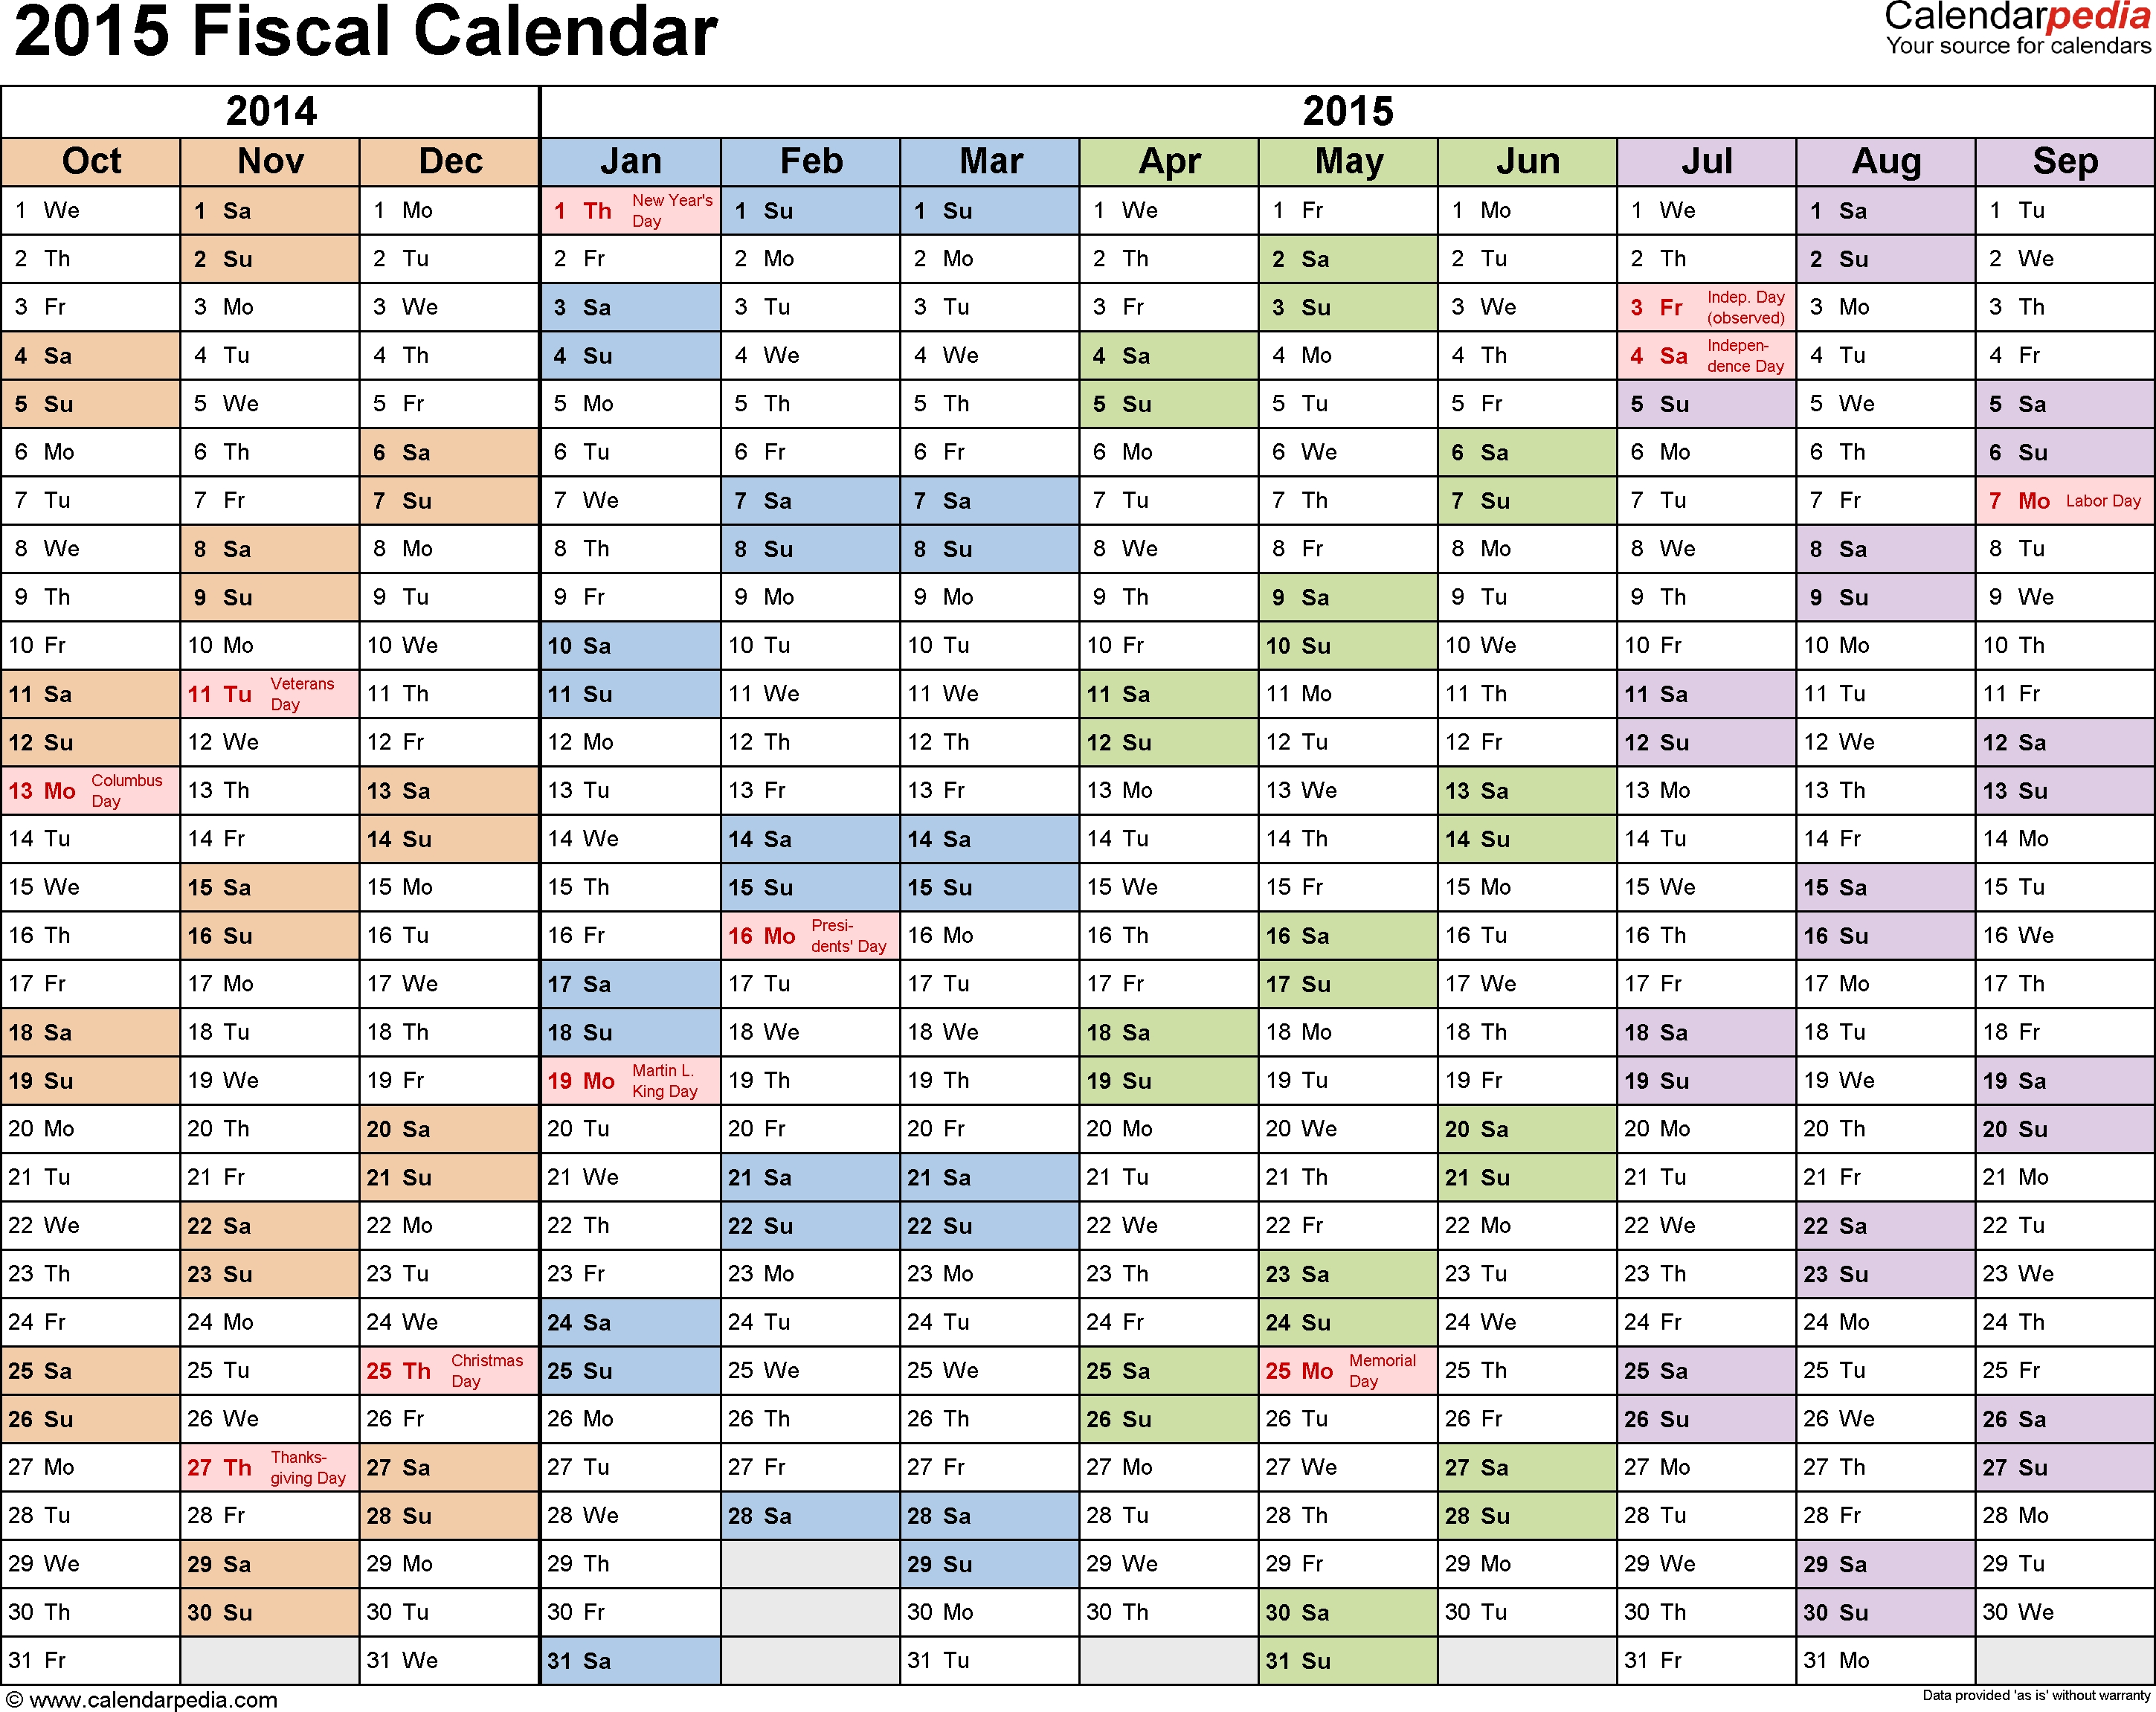 Fiscal Week Calendar 2015 - Colona.rsd7 intended for Financial Year Calendar 2019/20 Week Numbers